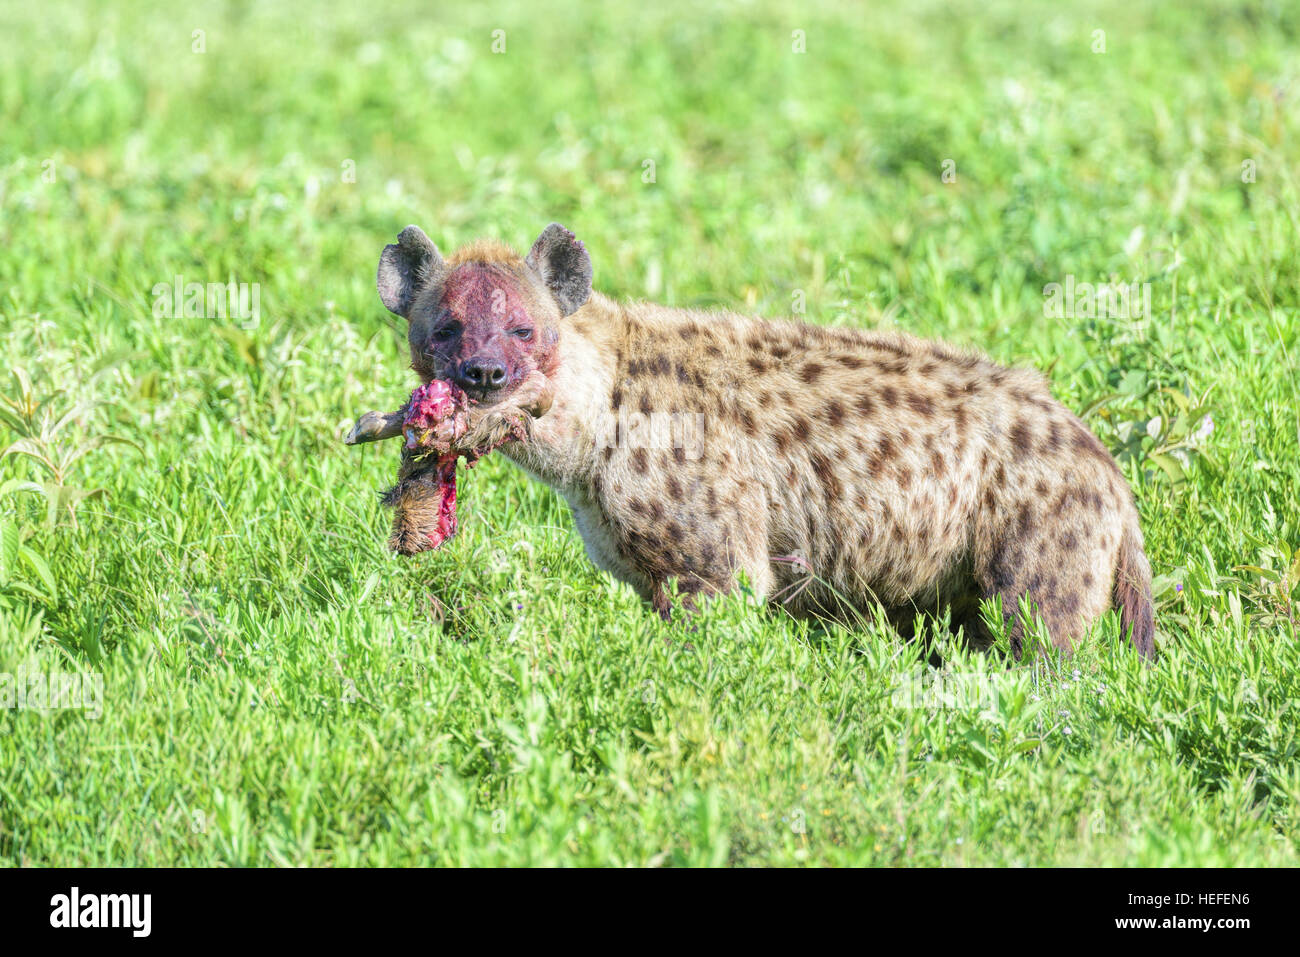 The blood-stained face of a wild spotted hyena (Crocuta crocuta) with the limb of a wildebeest in its mouth. - Stock Image